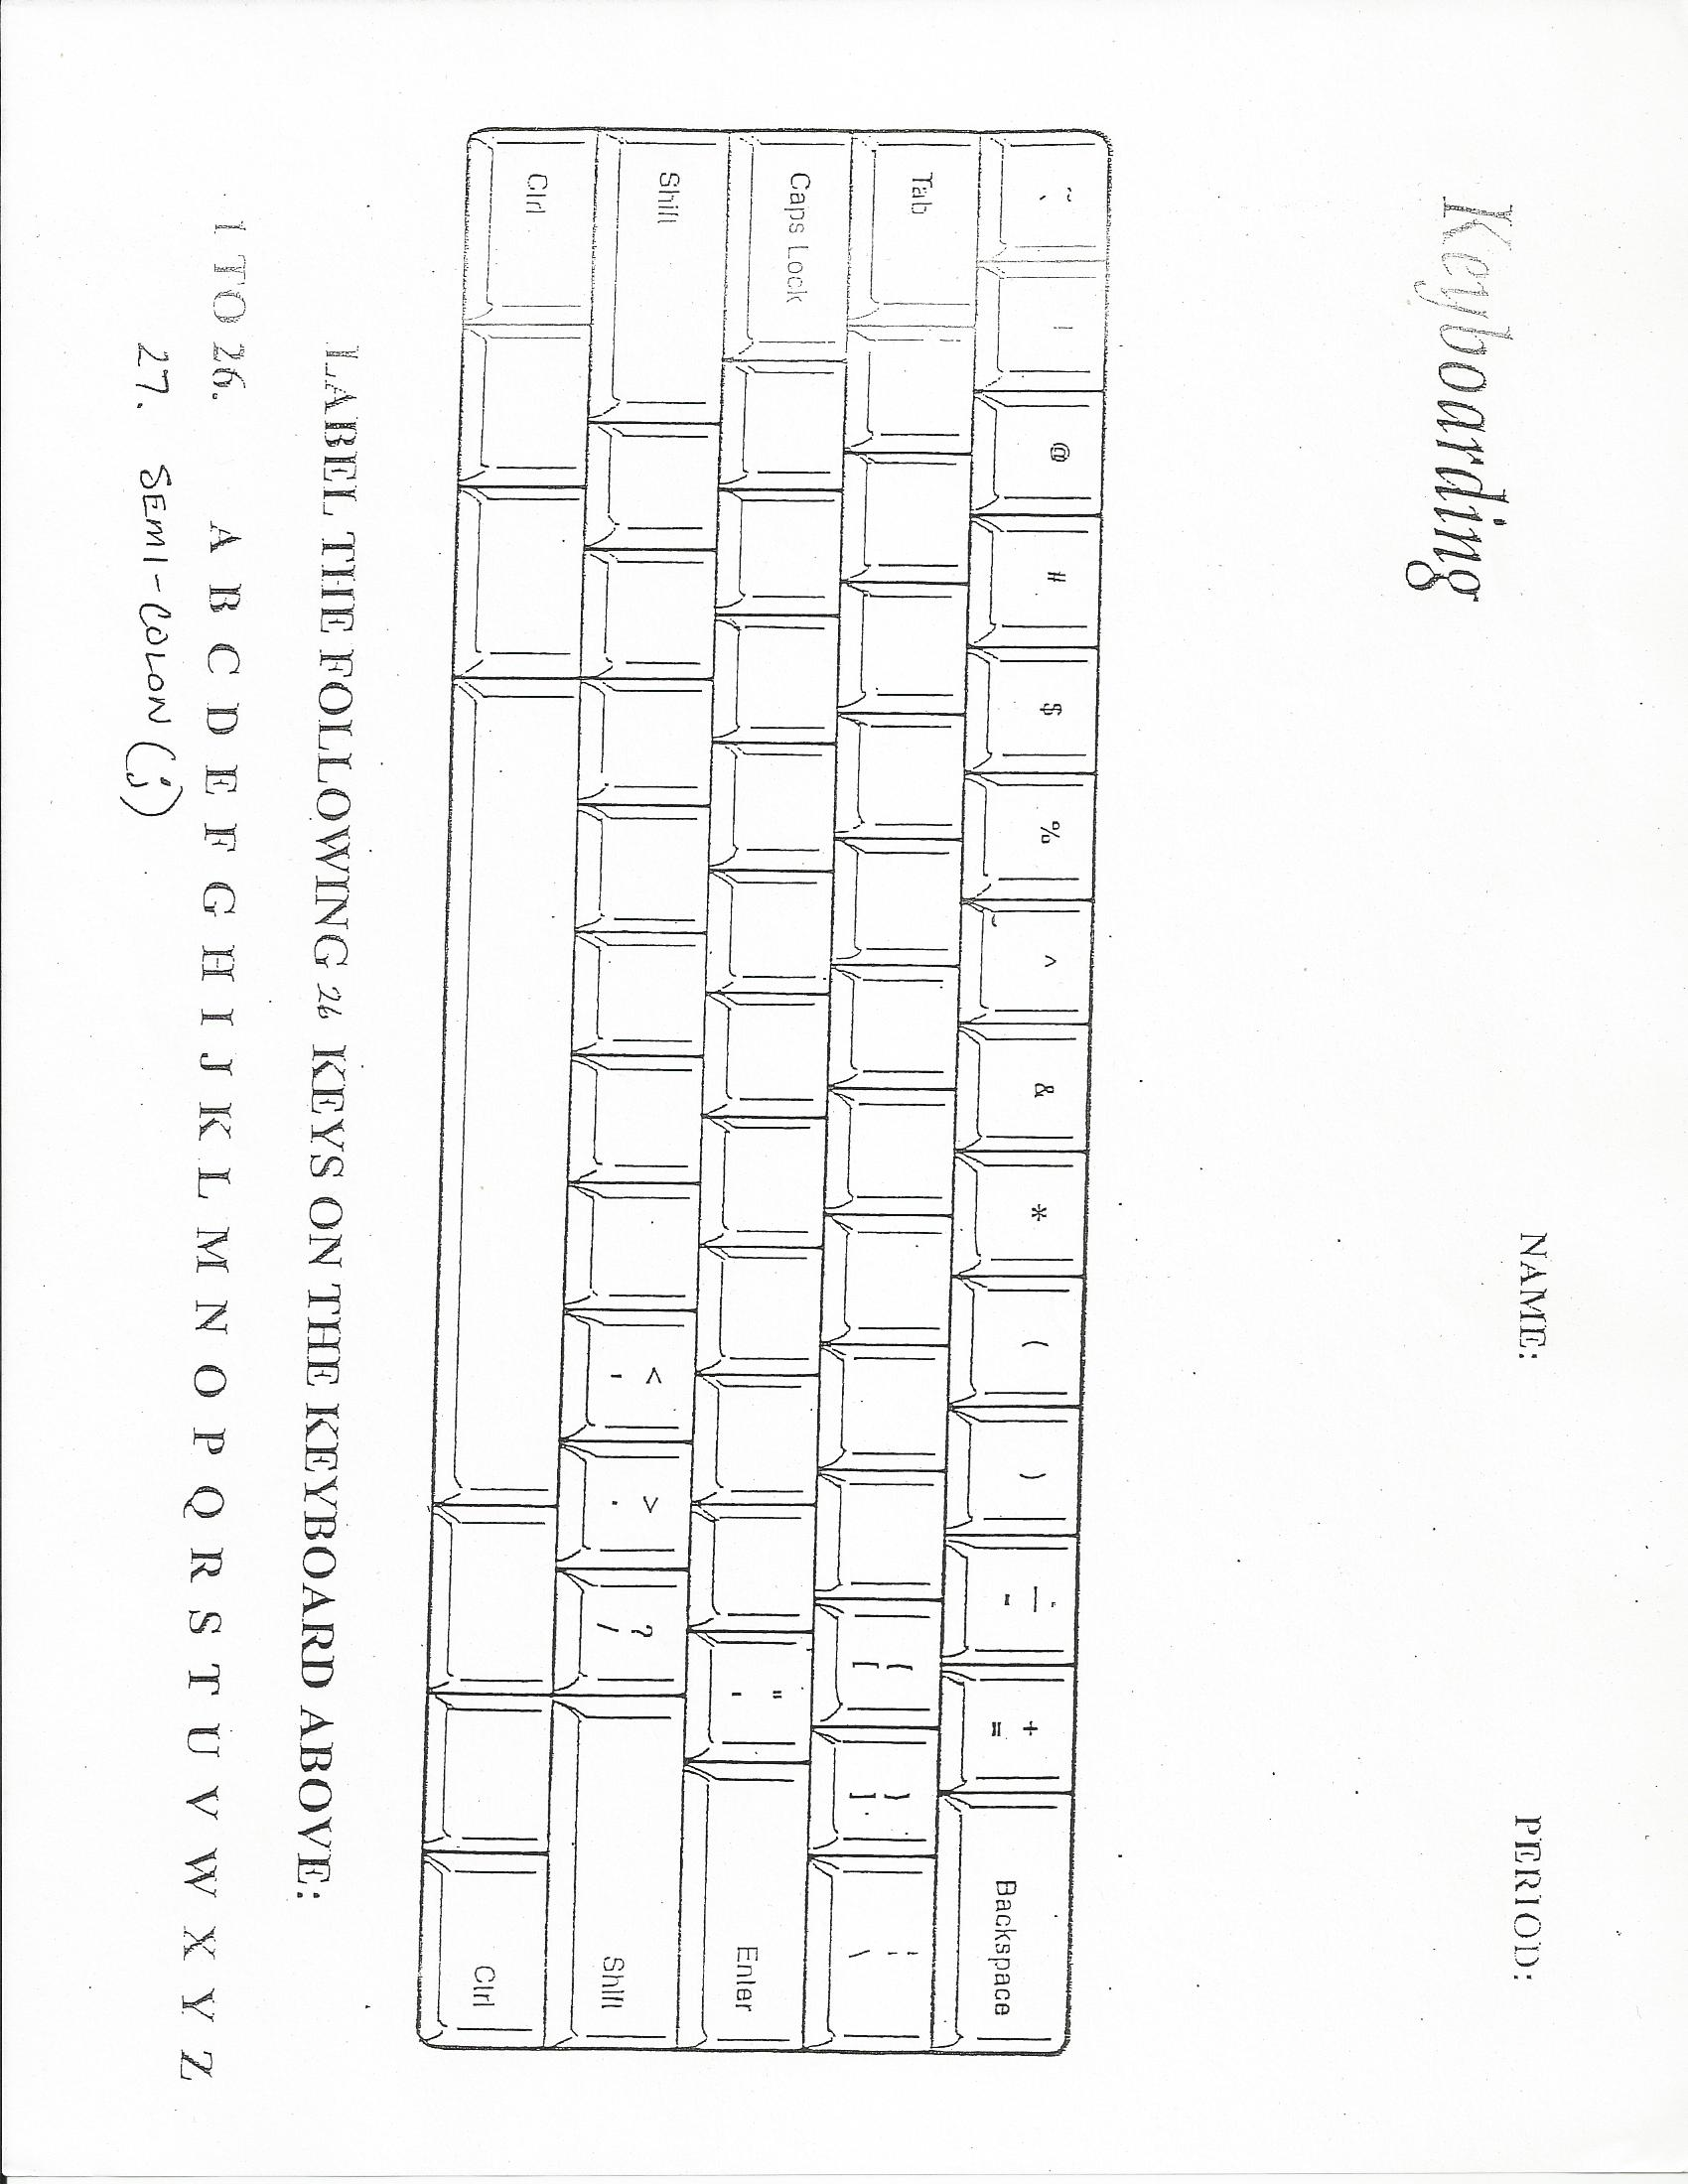 Worksheets Blank Computer Keyboard Worksheet computer literacy assignments mr yorks web page download file